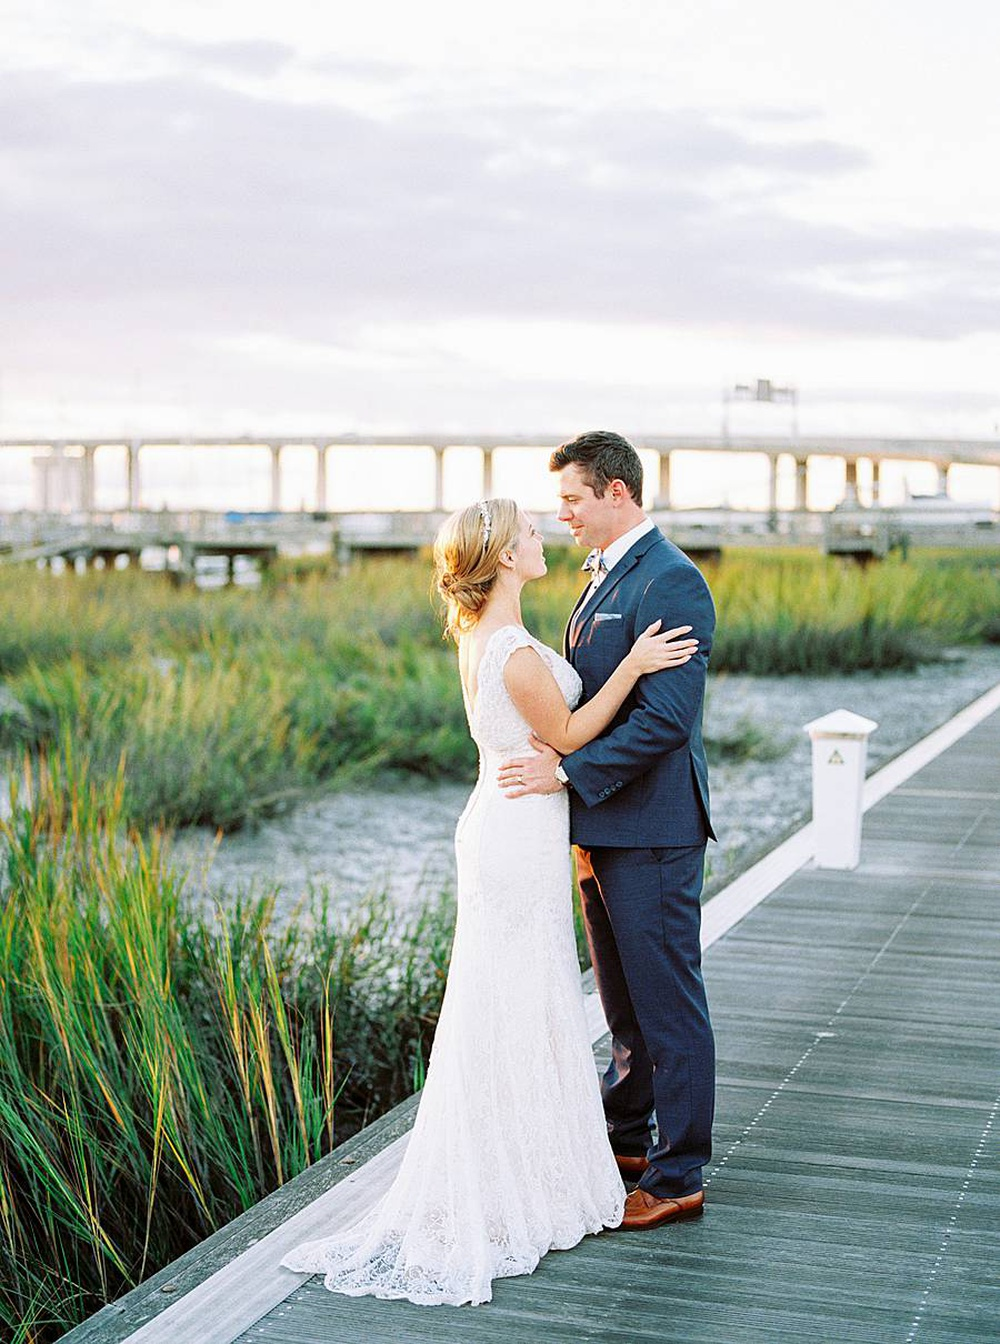 uploads/blog/stories/erin-matt/.thumbnails/1810-charleston-yacht-club-bay-street-chalmers-film-wedding-october-481_web_web.jpg/1810-charleston-yacht-club-bay-street-chalmers-film-wedding-october-481_web_web-1000x0.jpg